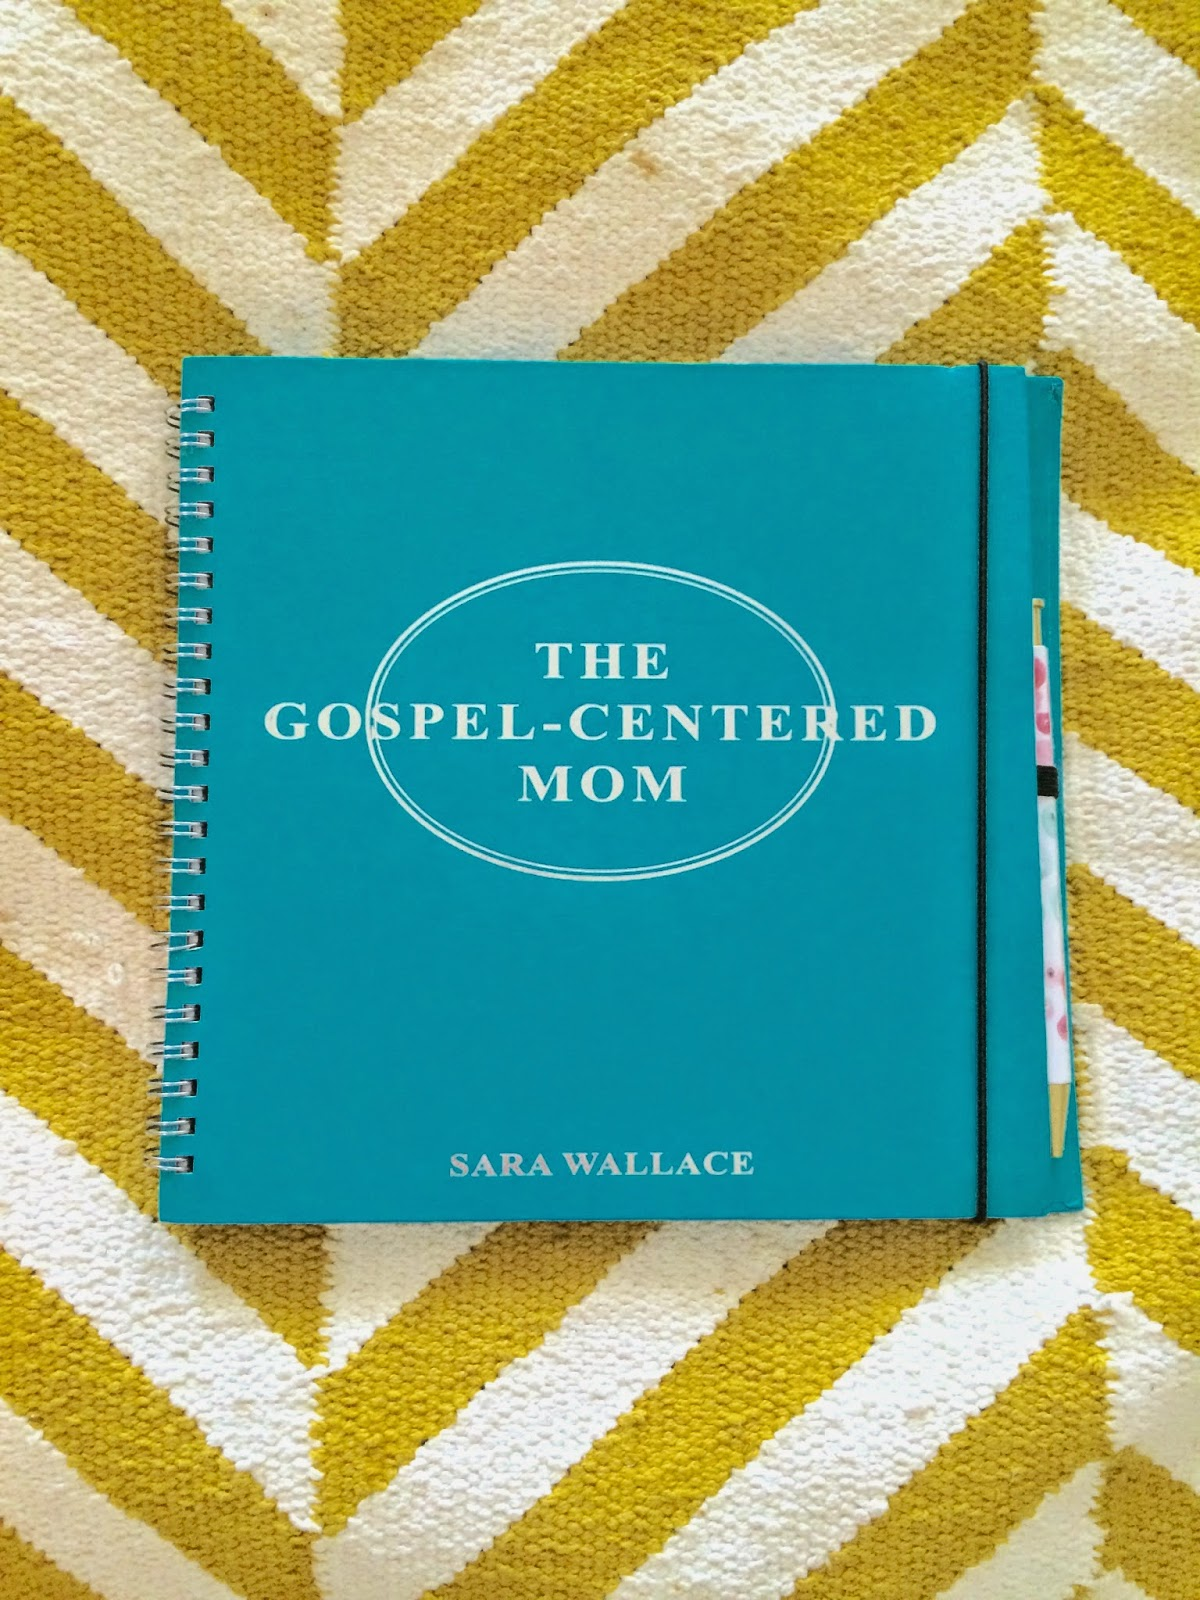 the gospel-centered mom (from the jensens blog)